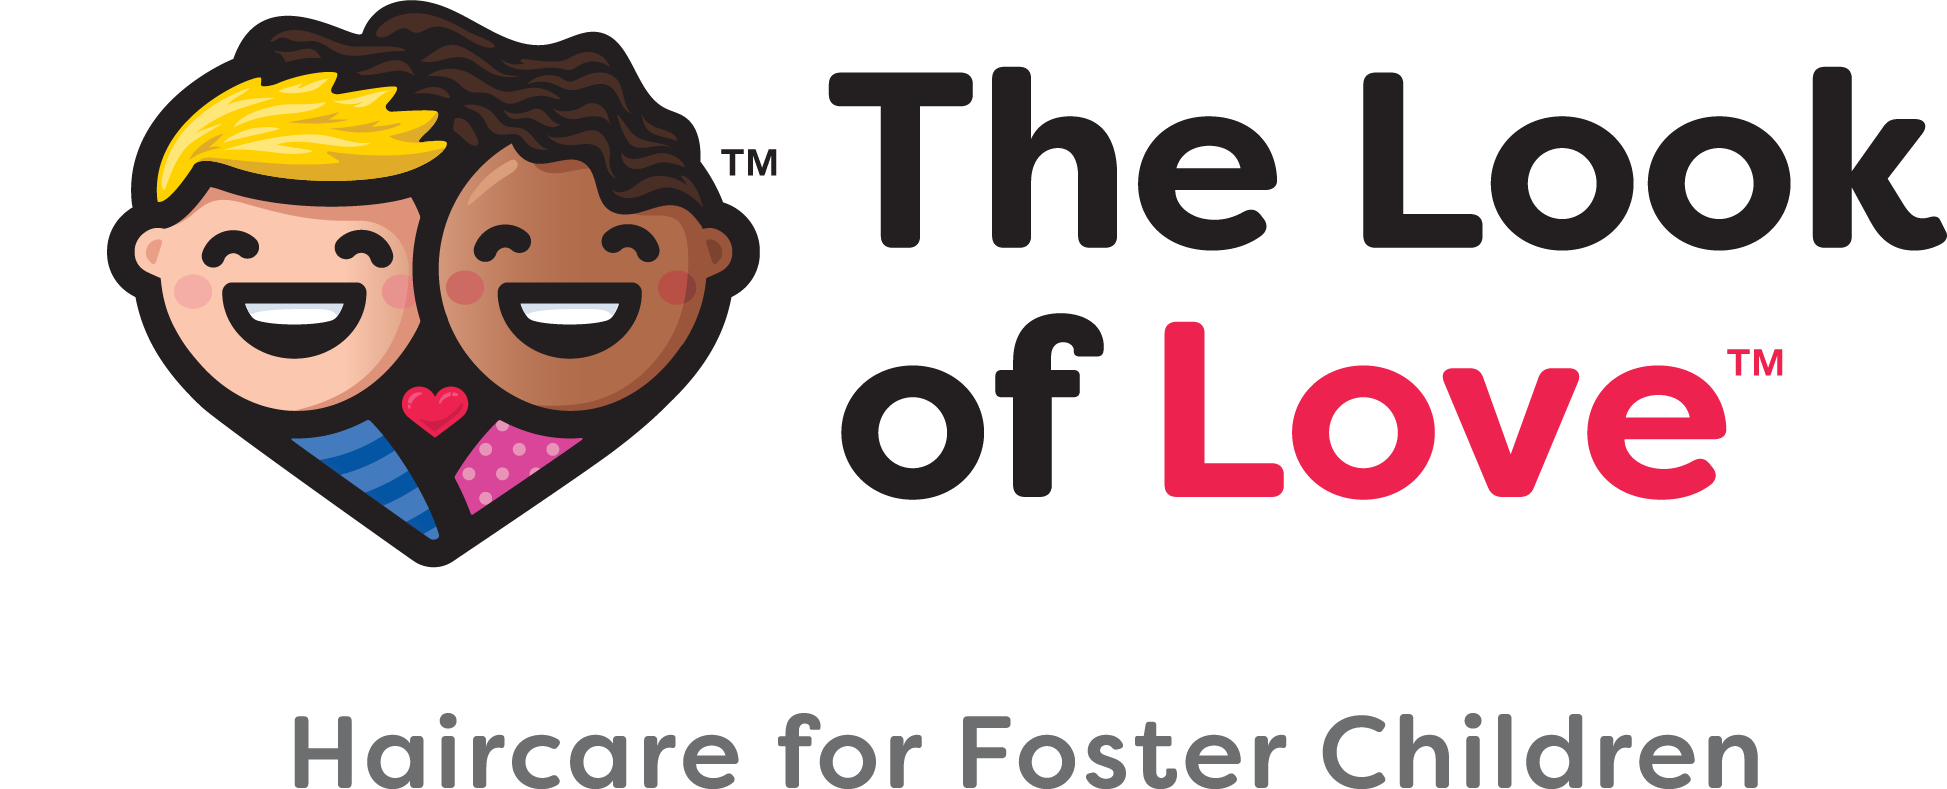 TM-www.TheLOL4Kids.org-logo-The-Look-of-Love-Haircare-foster-kids-homeless-youth-Hair-care-thelol4kids-foster-care-mission-create-mission-accomplish-niya-parks-501c3-501(c)(3)-charity-tax-deduction.png